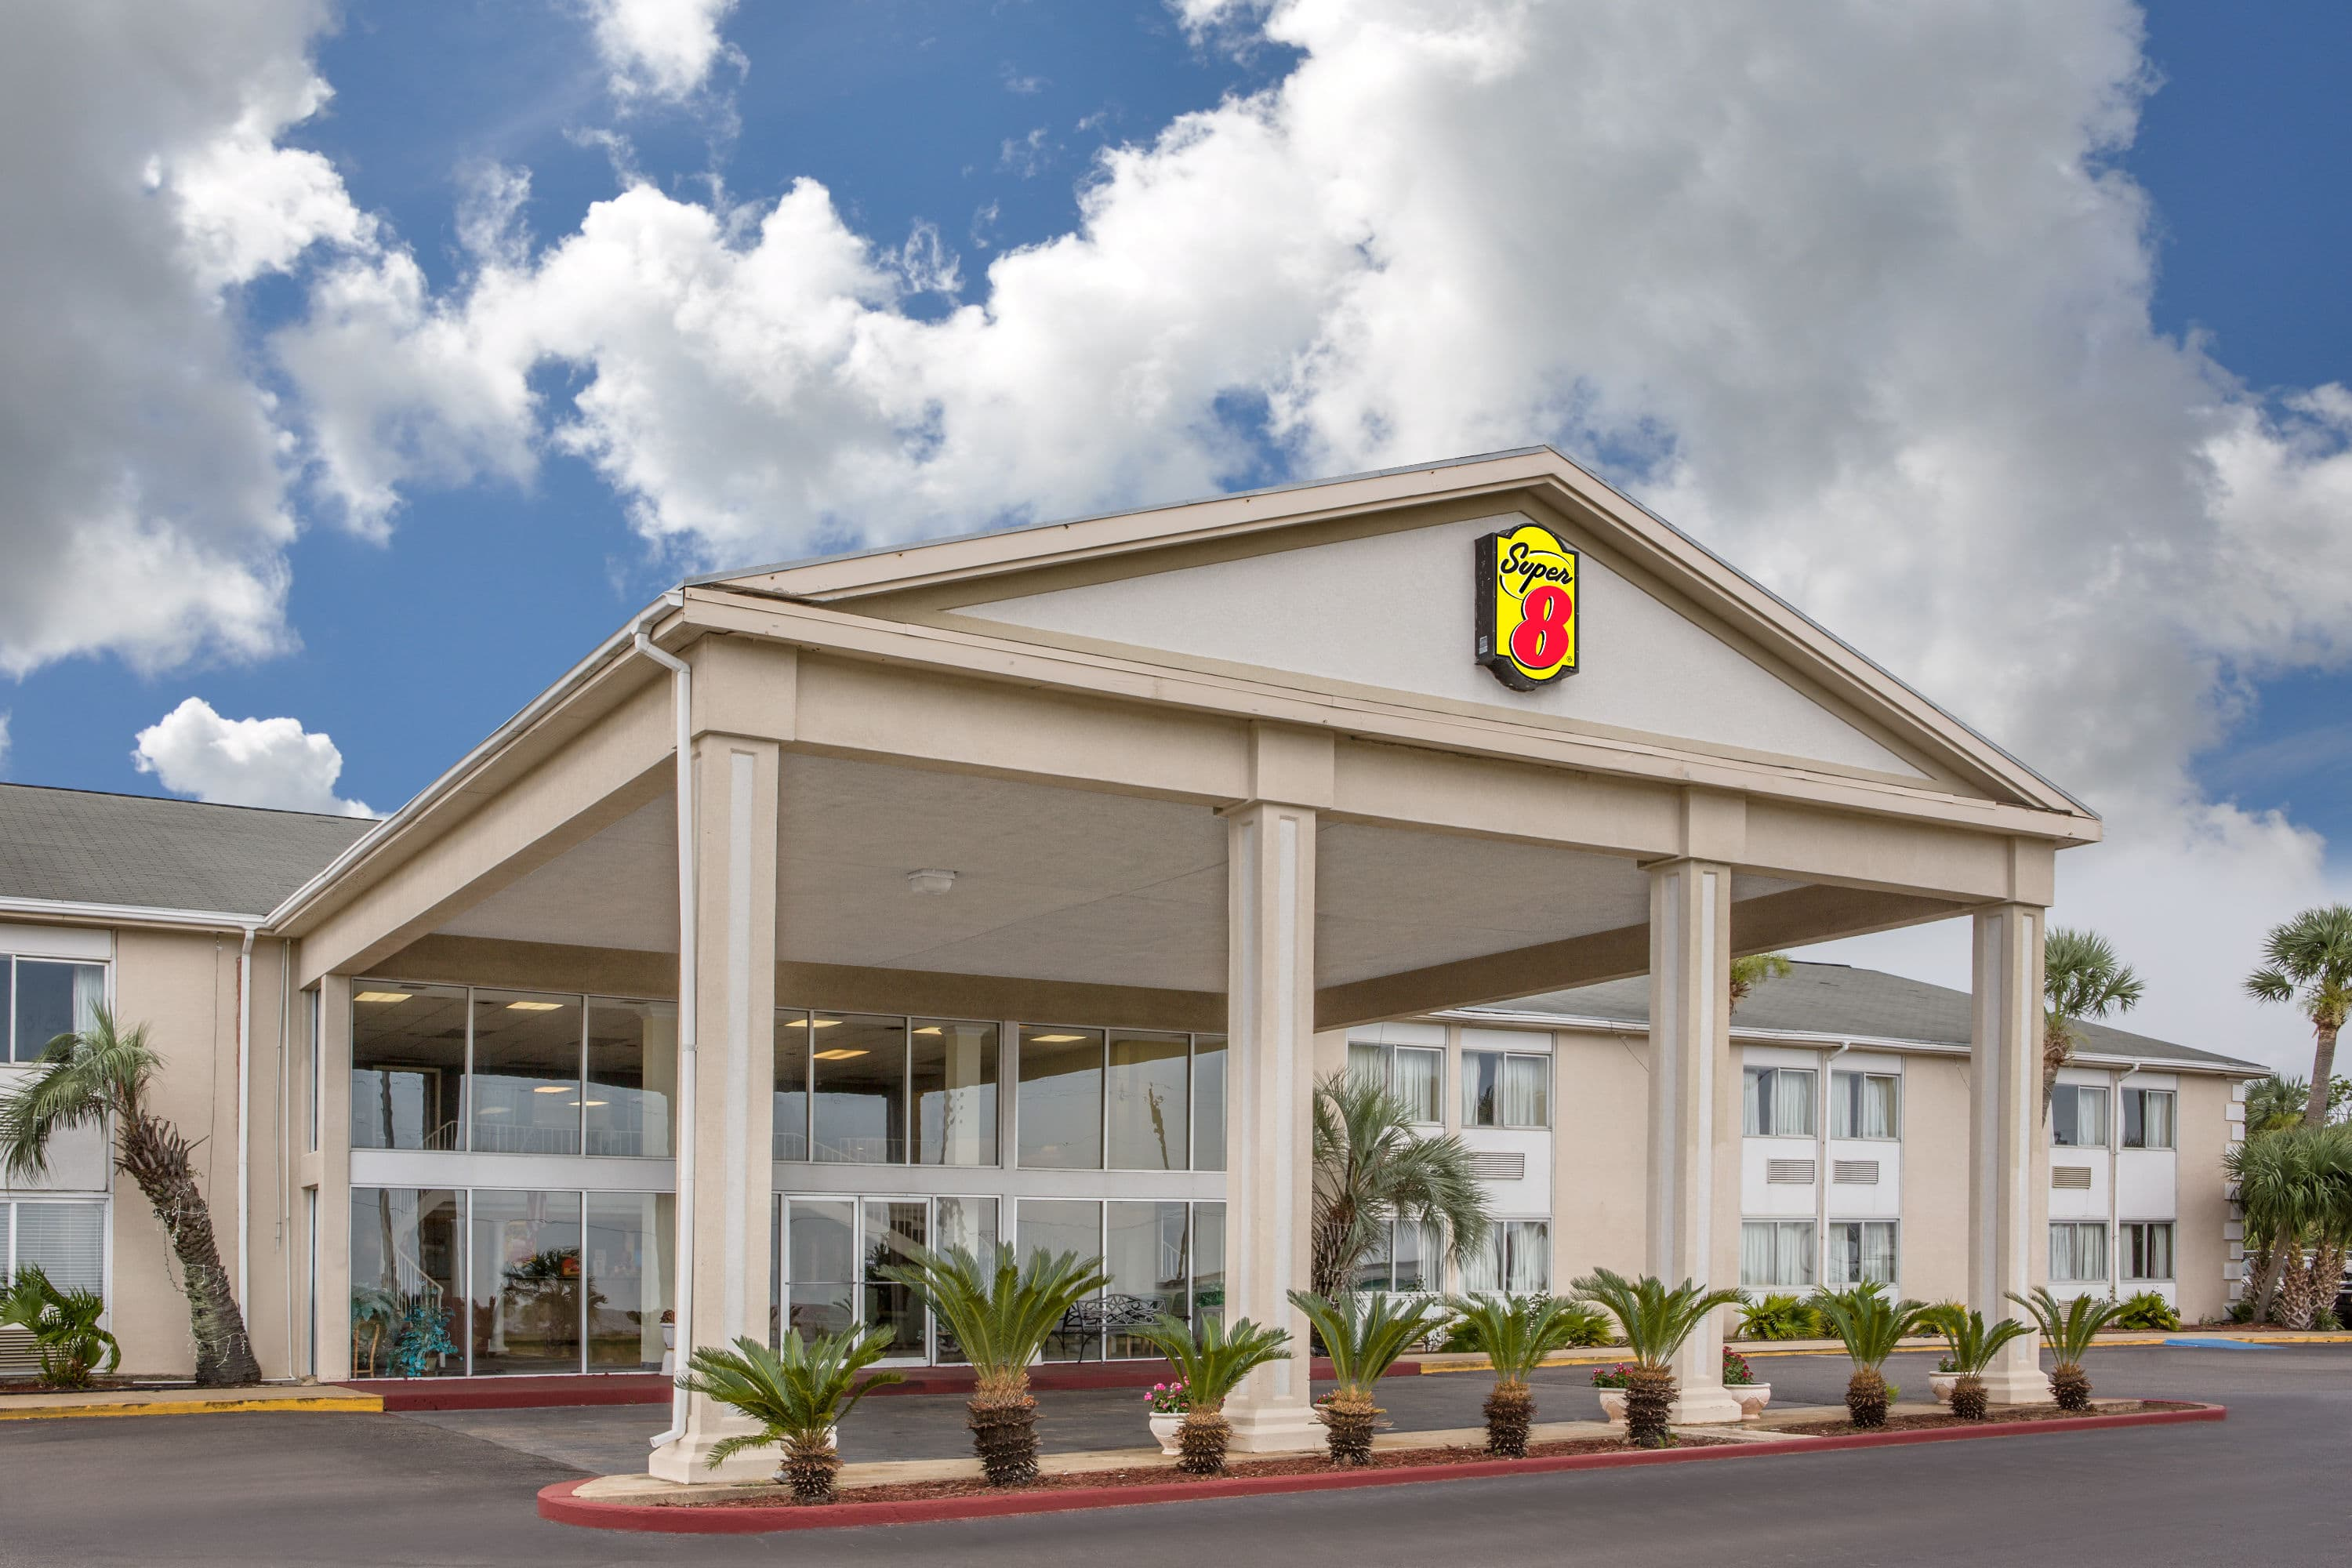 Super 8 By Wyndham Biloxi Biloxi Ms Hotels